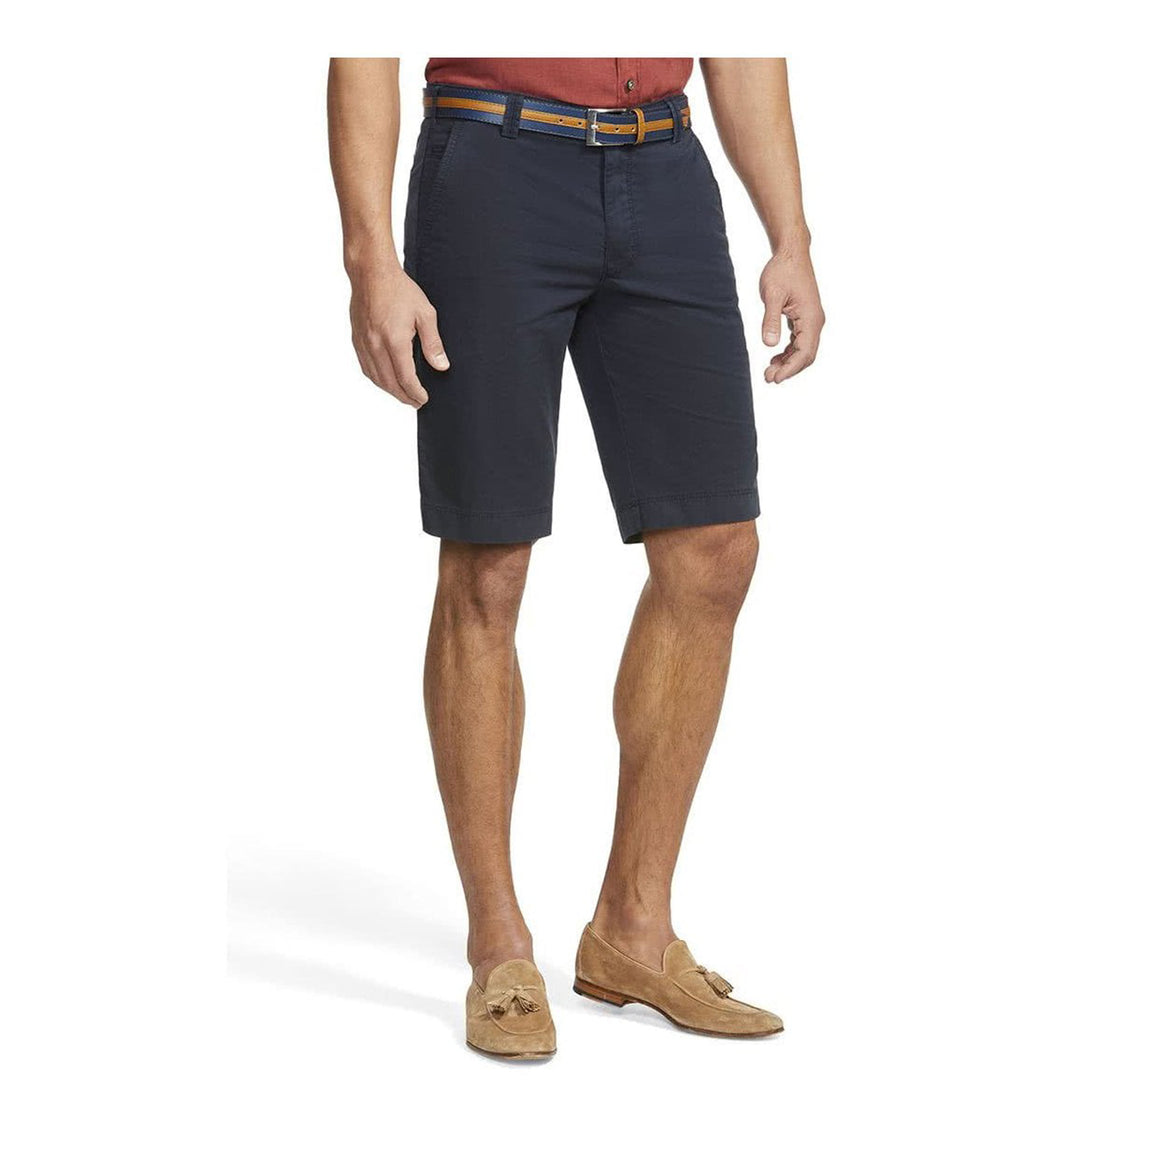 B-Palma Cotton Twill Short  for Men in Navy